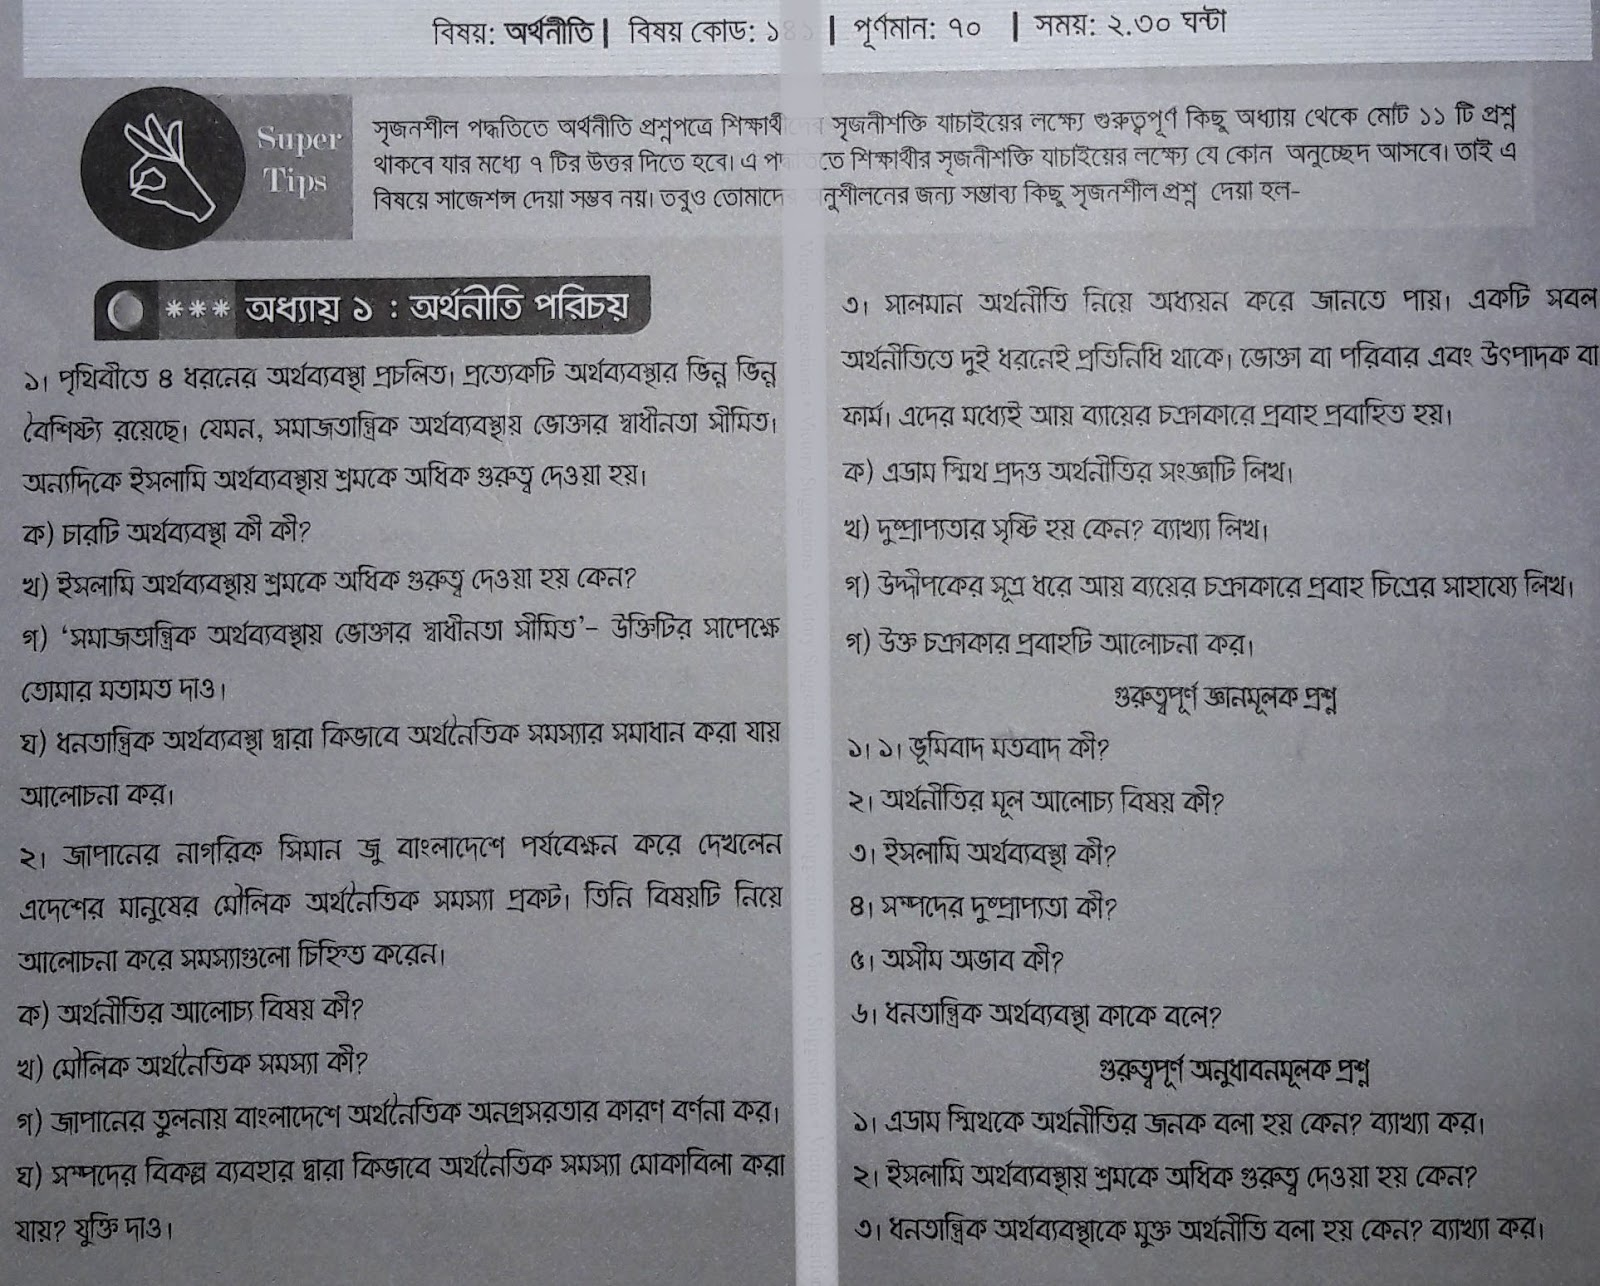 ssc Economics suggestion, question paper, model question, mcq question, question pattern, syllabus for dhaka board, all boards